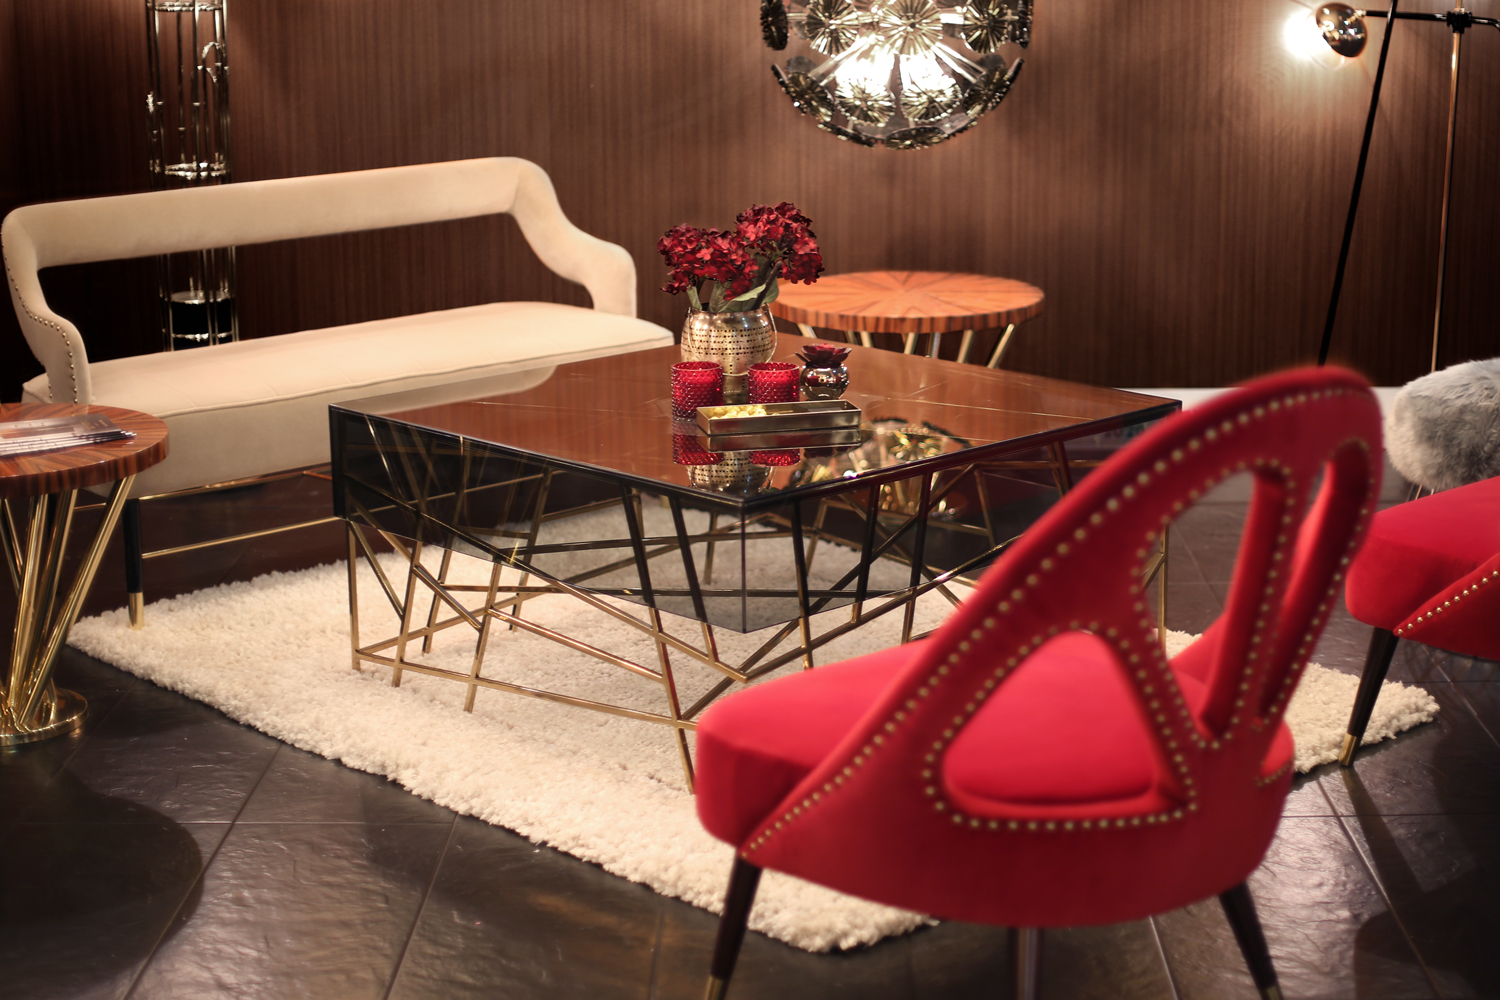 Kenzo Modern Center Table Design Contemporary Style Furniture World Class Architecture Living Room